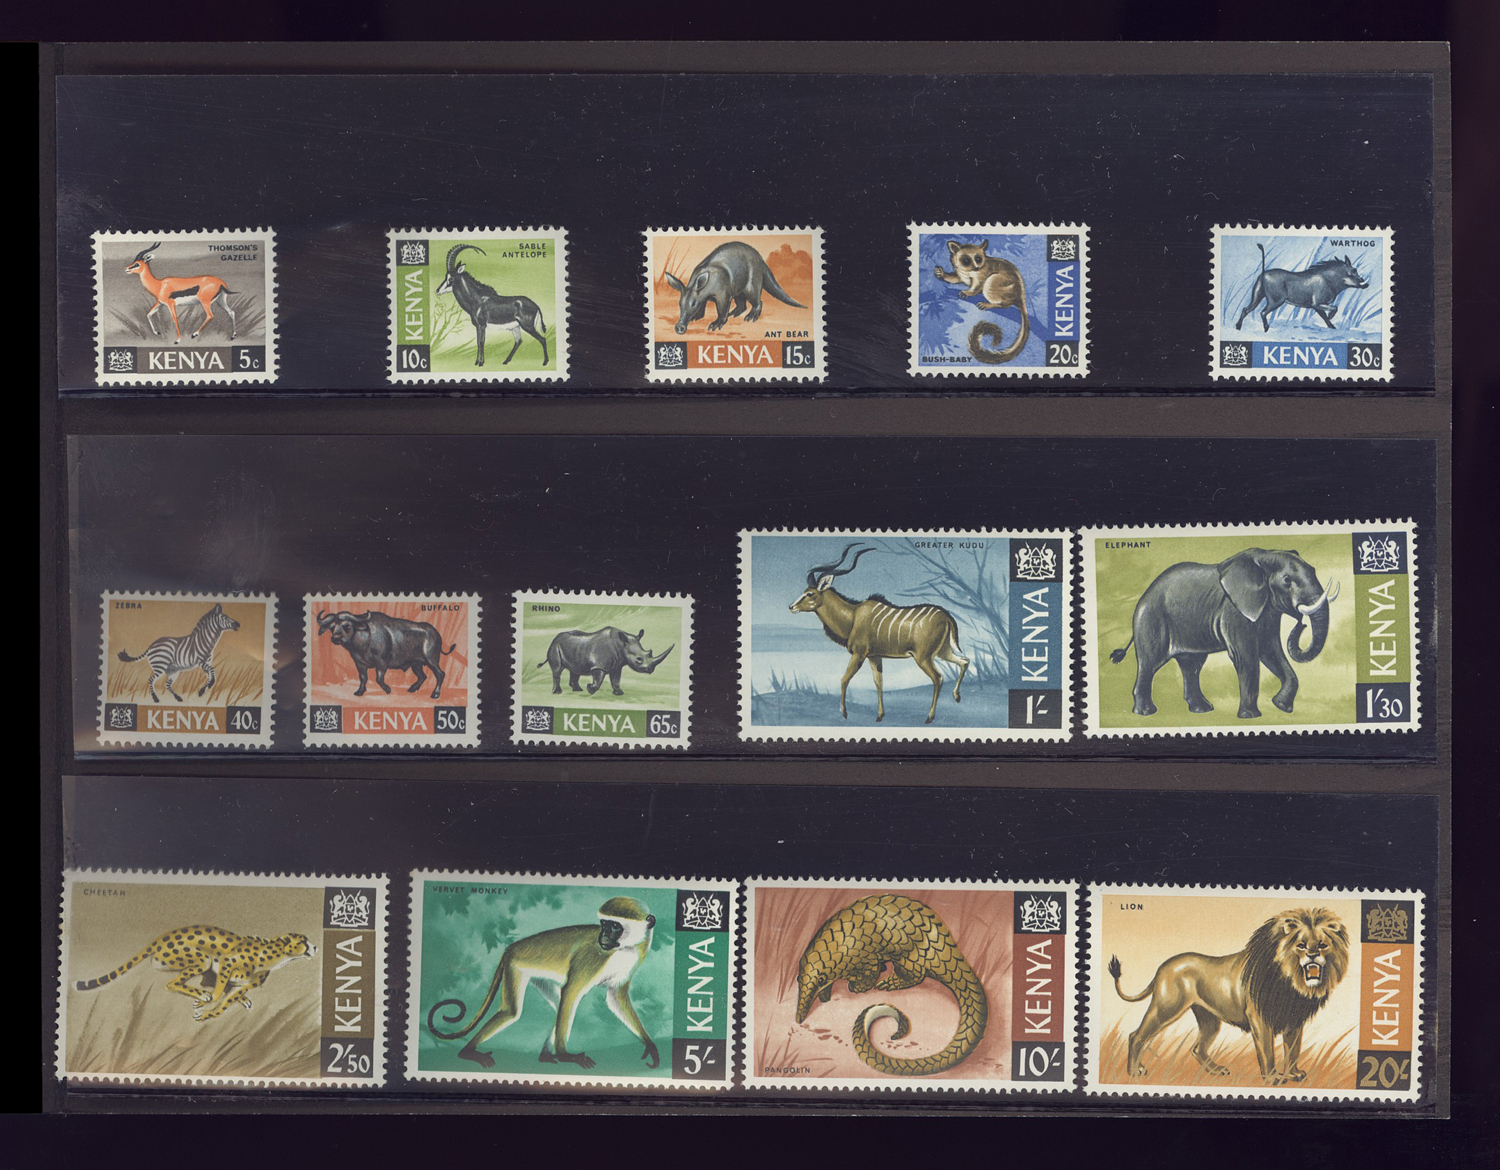 Africa Topical Stamps Africa 50 Different African Animals Stamps